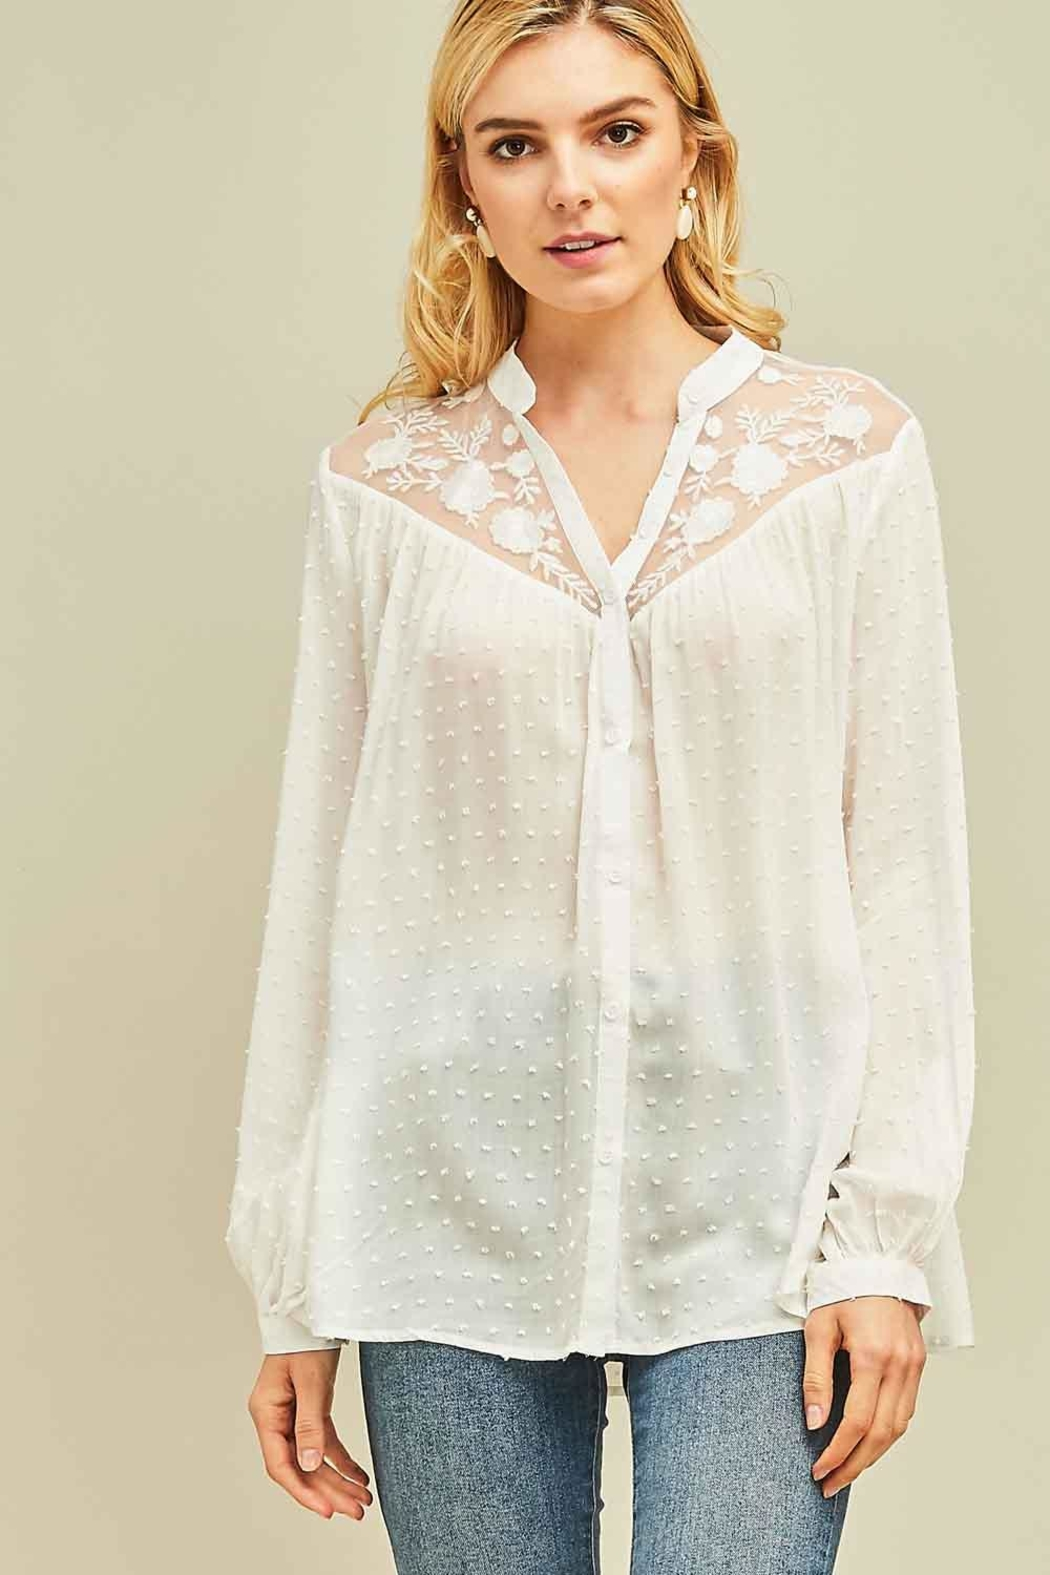 Entro Dotted Swiss Button-Up Top - Front Cropped Image